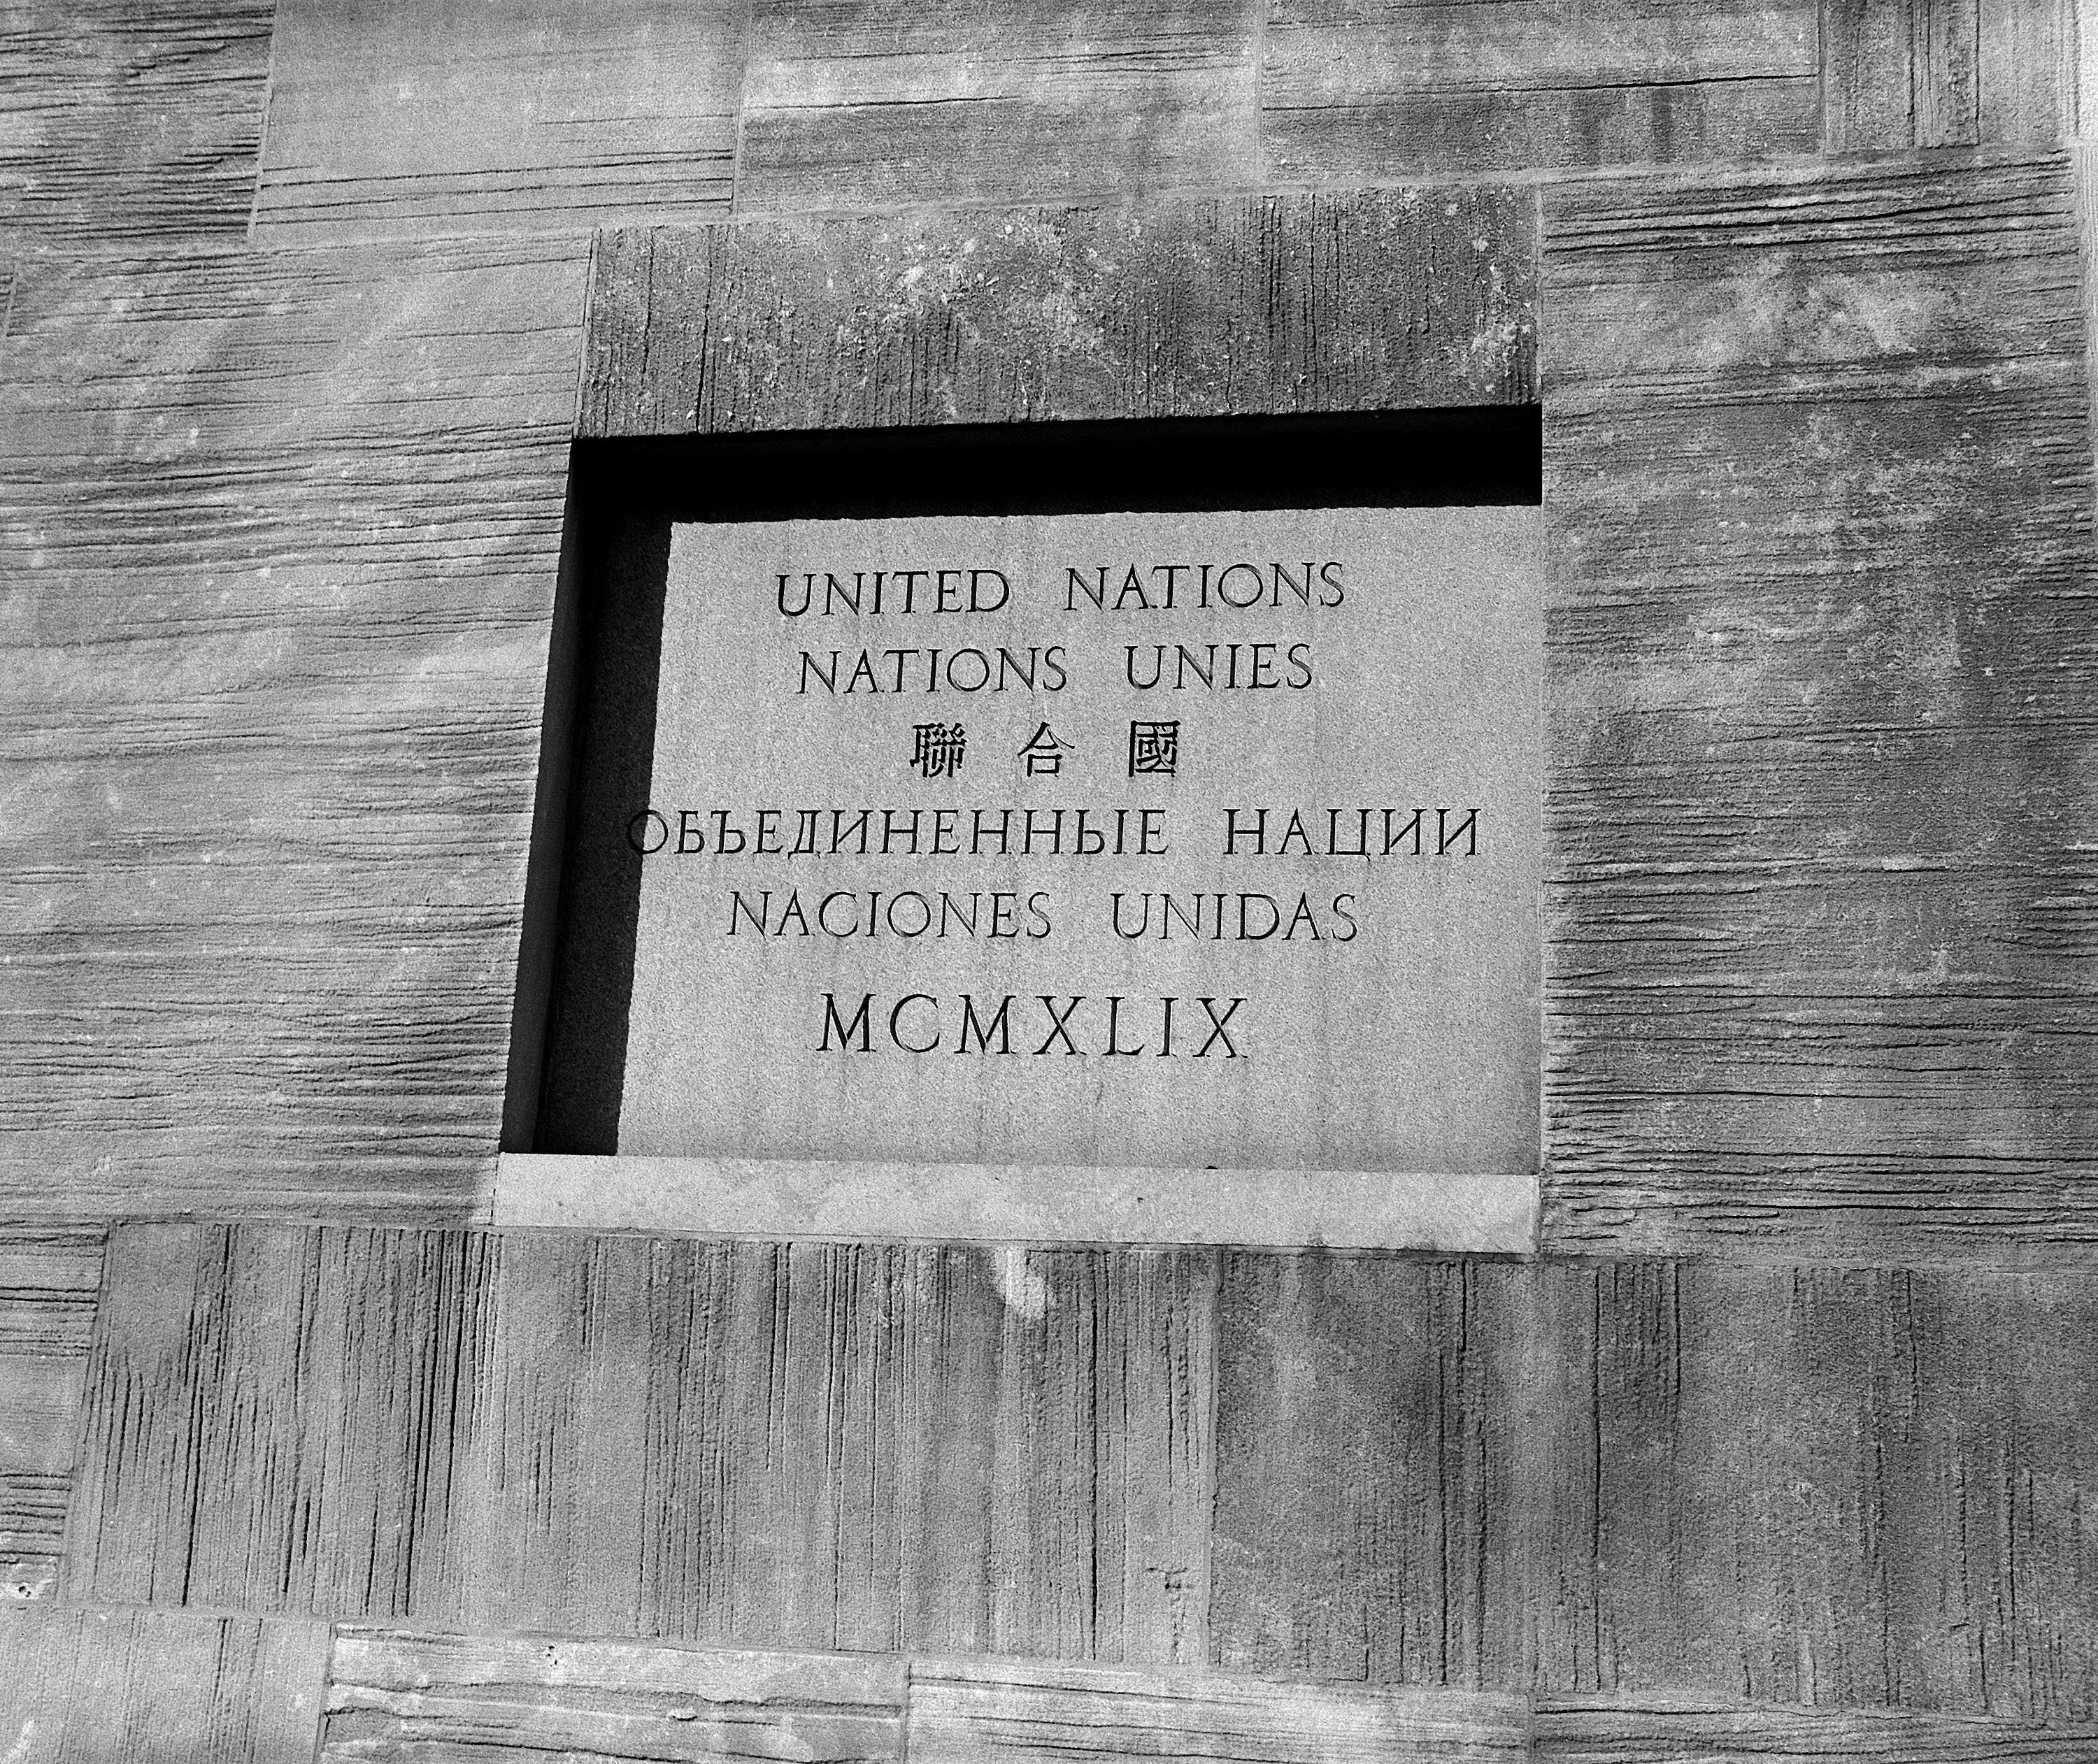 Picture of the UNHQ cornerstone, 1949, UN Photo 76194